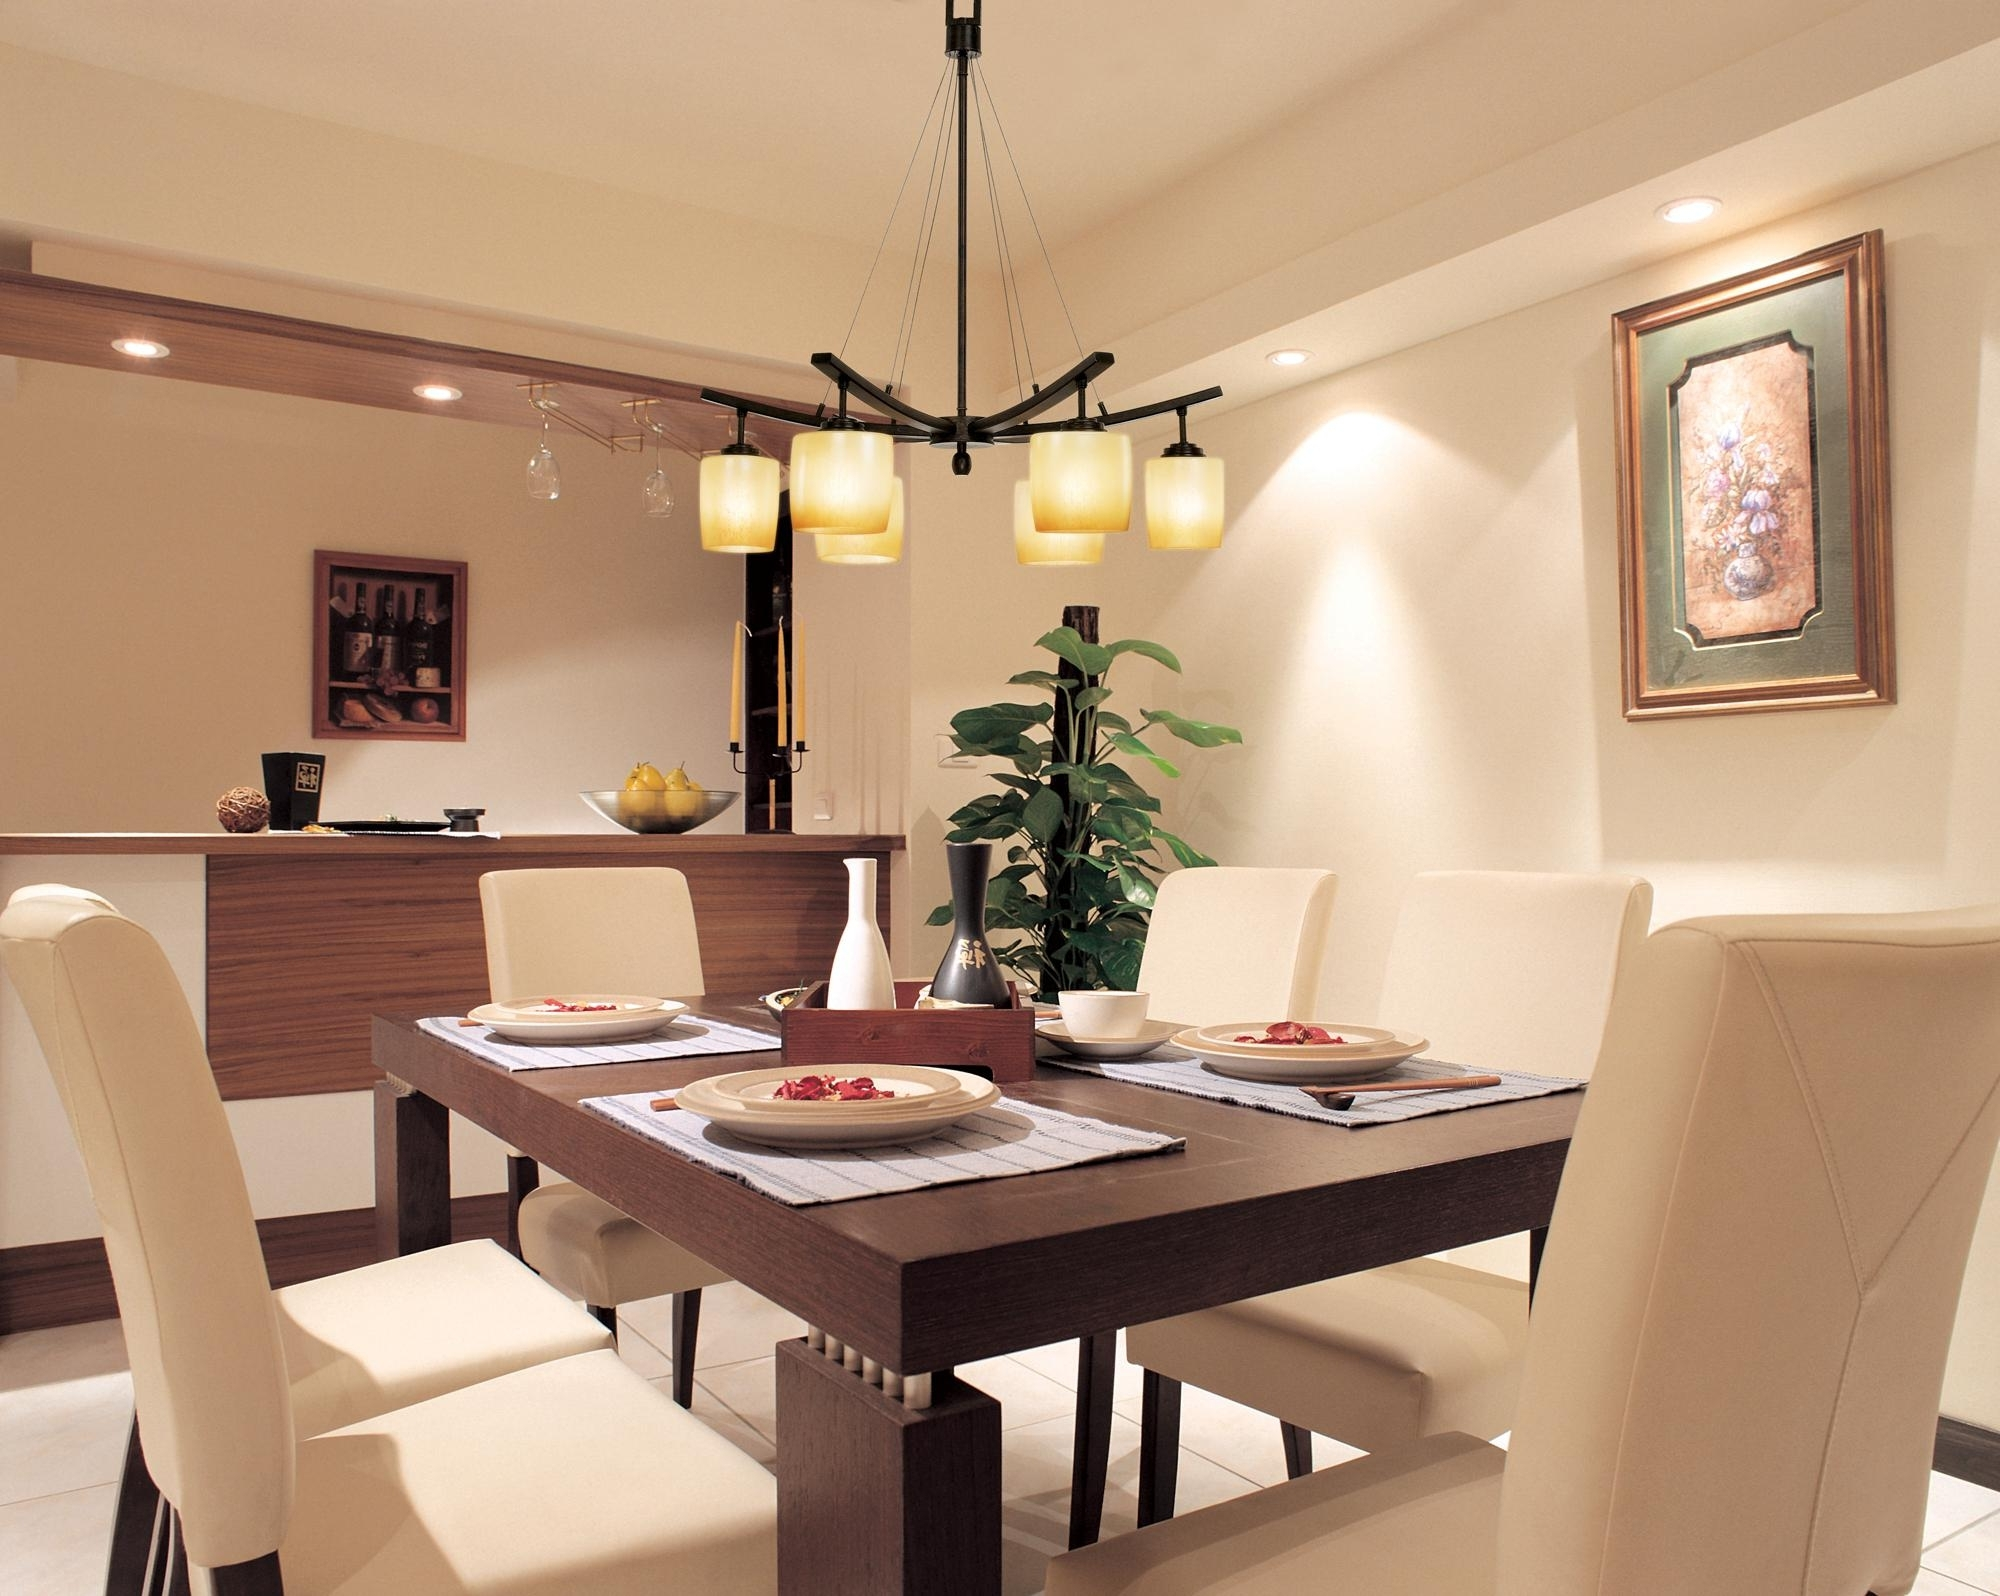 Living Room Table Top Lamps Pertaining To 2018 Room Ceiling Light Fixtures Inside Dining Ideas Table Lighting From (View 7 of 15)